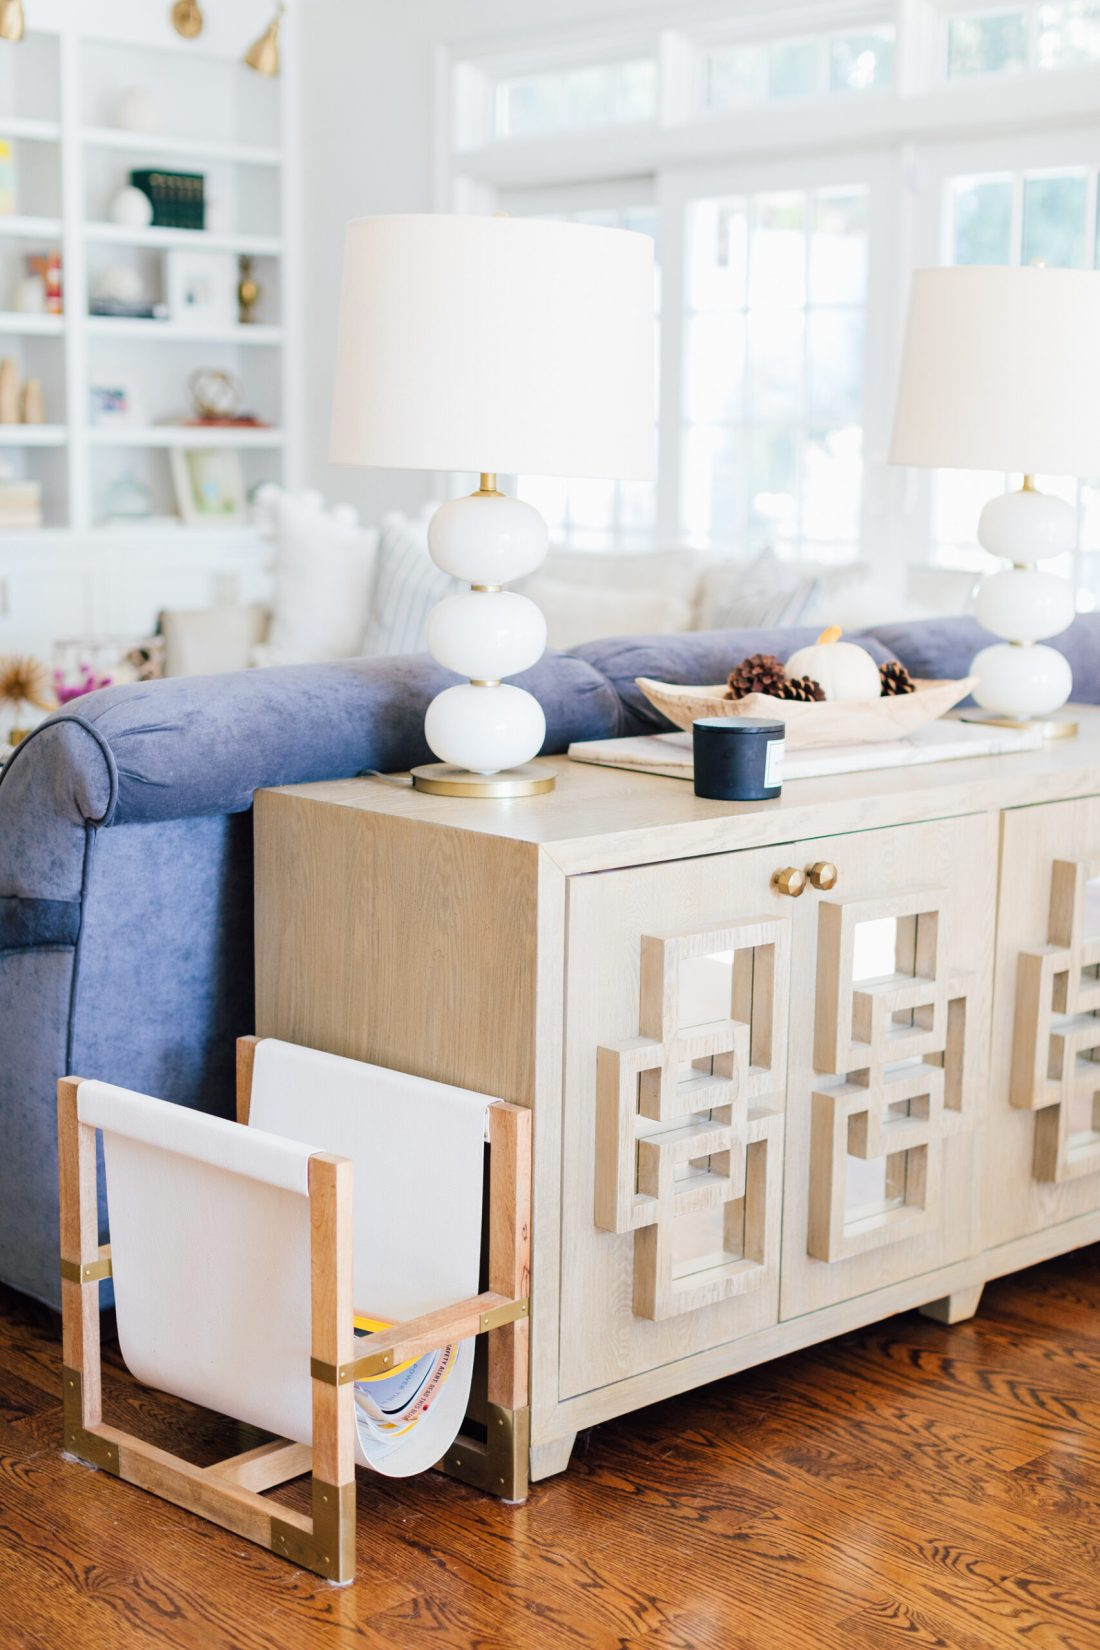 Our favorite sideboard in our family room!  10 favorite buffet sideboards cabinet credenza that will provide table top styling and a place to organize your home items.  || Darling Darleen